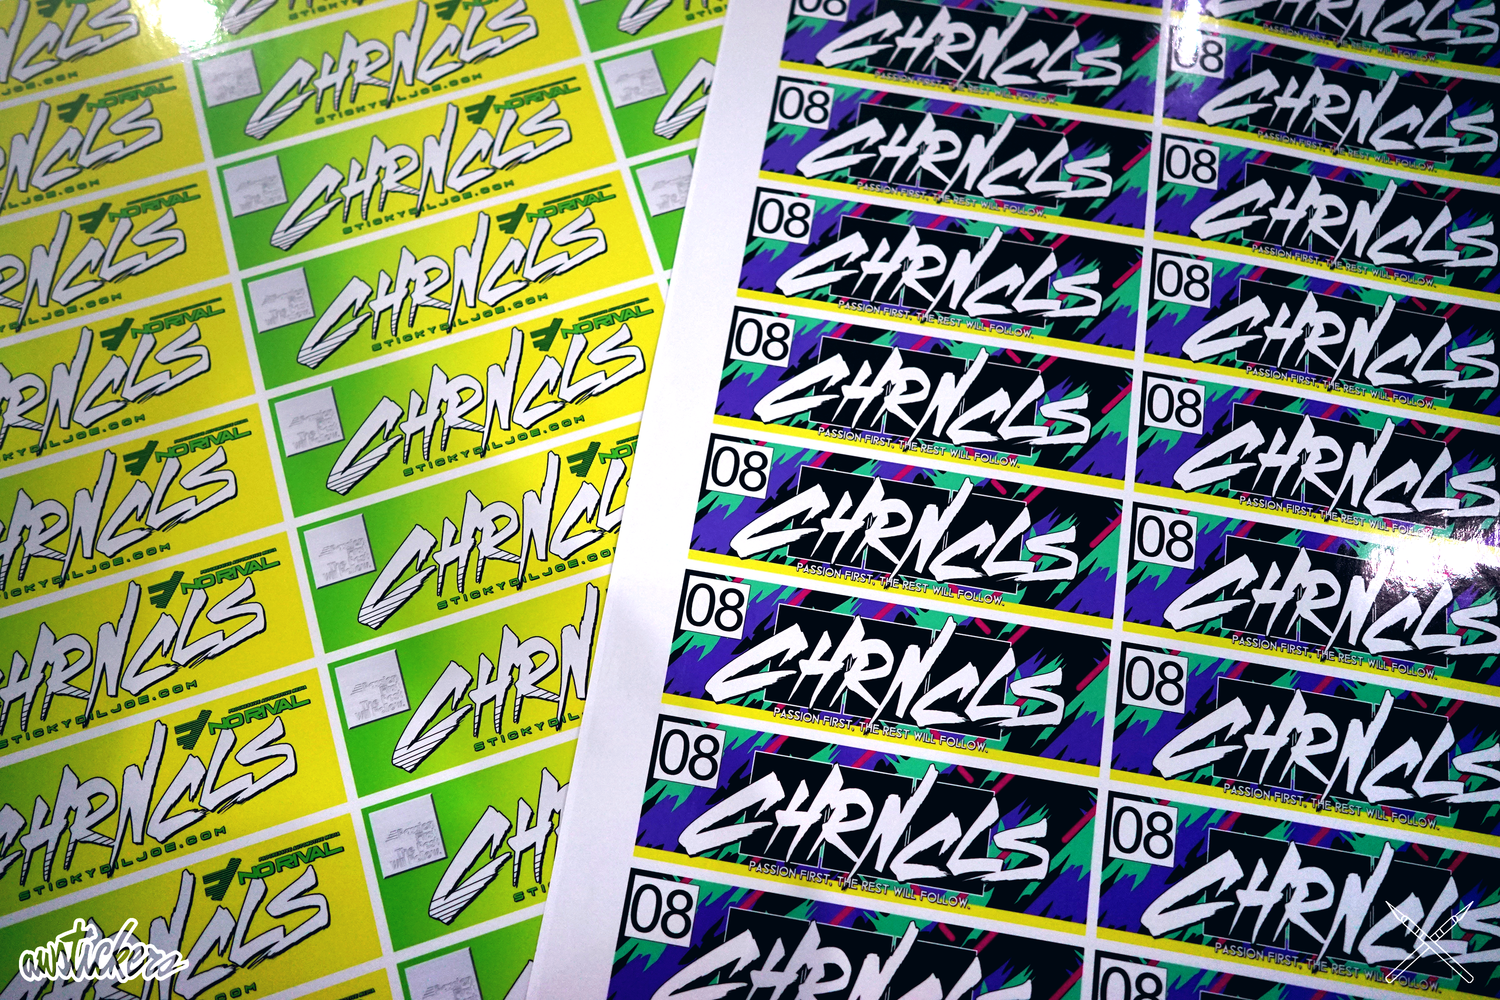 Printed stickers